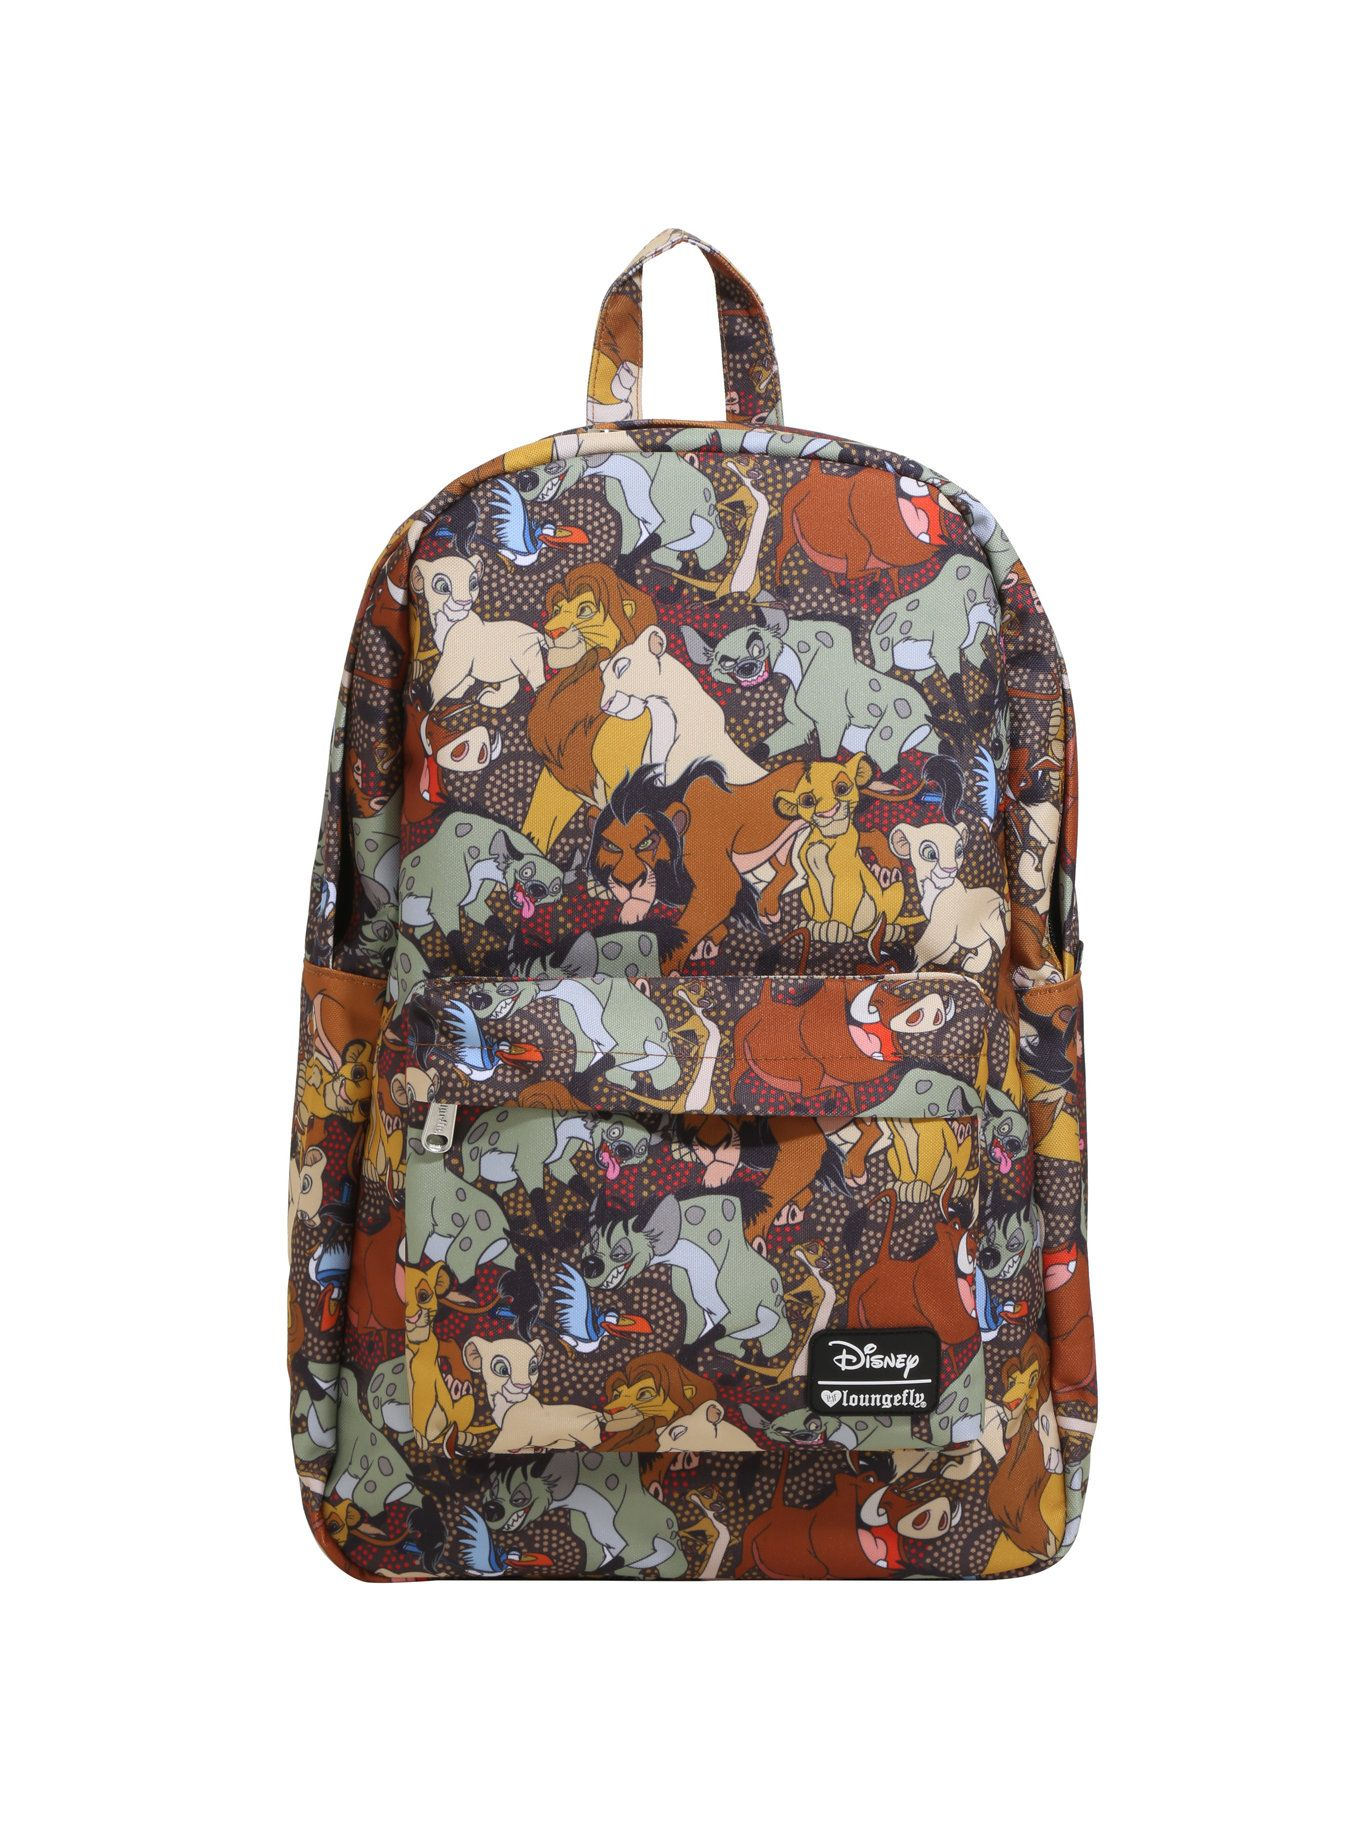 7e407e575d04 Canvas backpack from Disney s  i The Lion King  i  with an allover print  design featuring some of the main characters from the animated classic  including ...